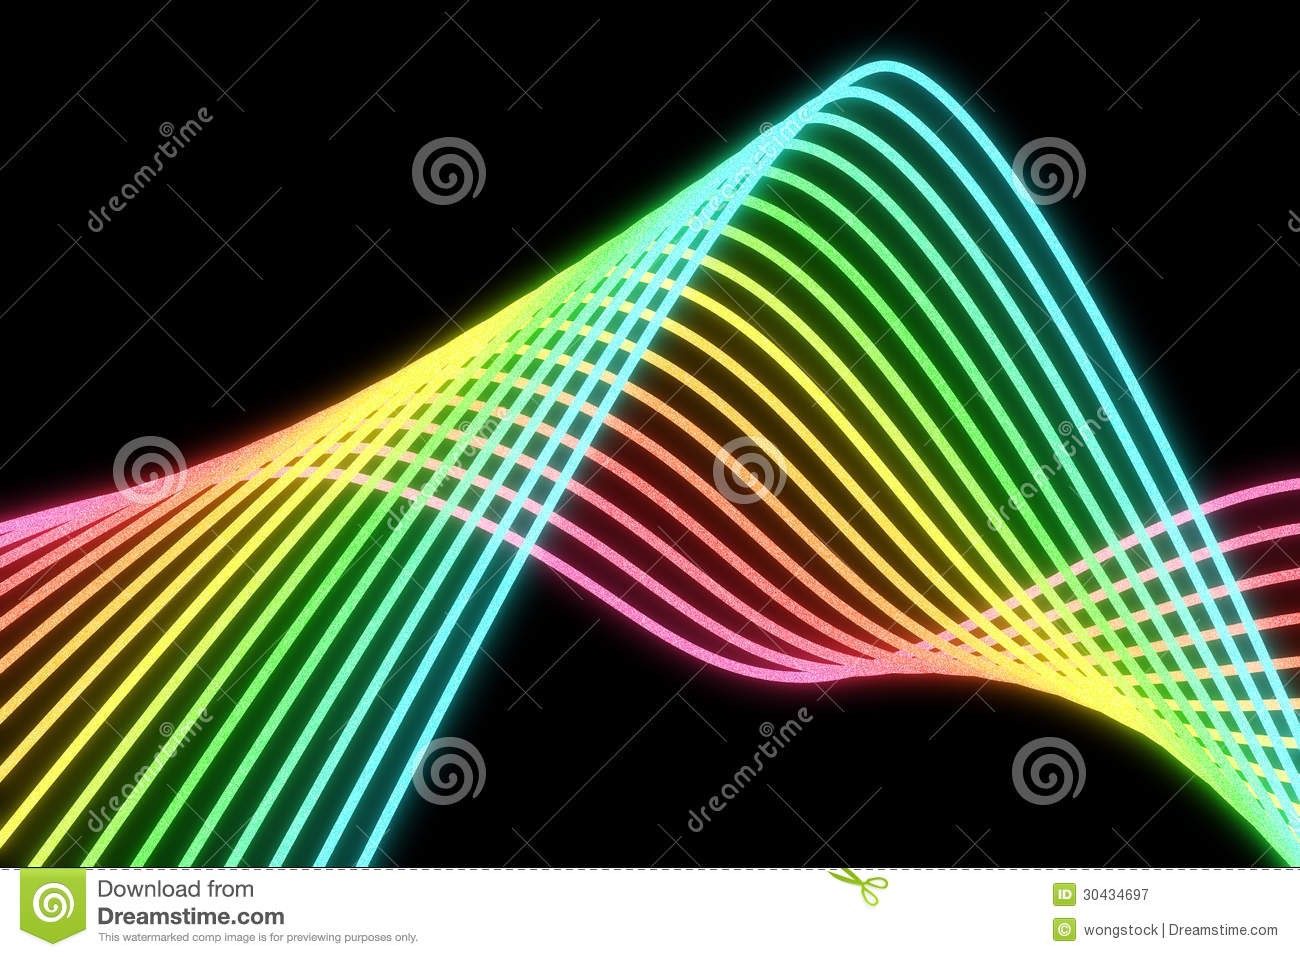 Glowing multicolored neon lines on a black backgrund